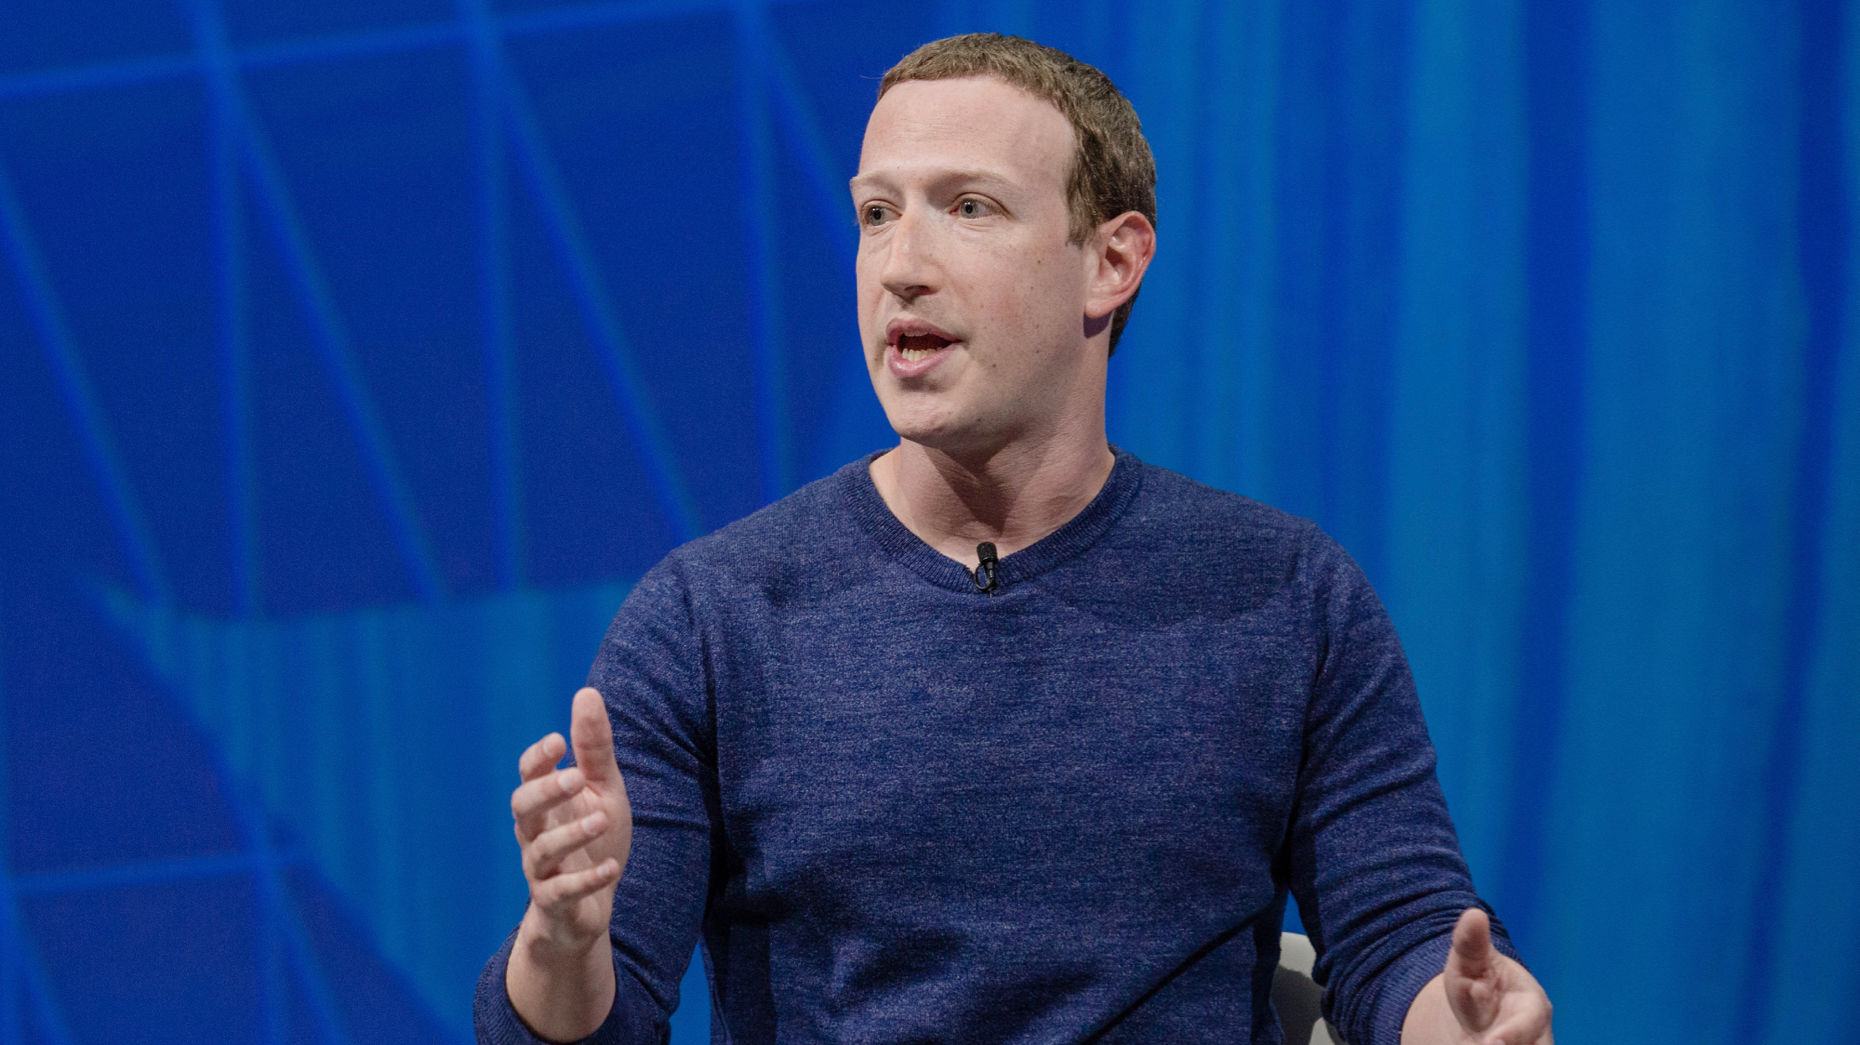 Facebook CEO Mark Zuckerberg speaking at a conference in Paris in May. Photo by Bloomberg